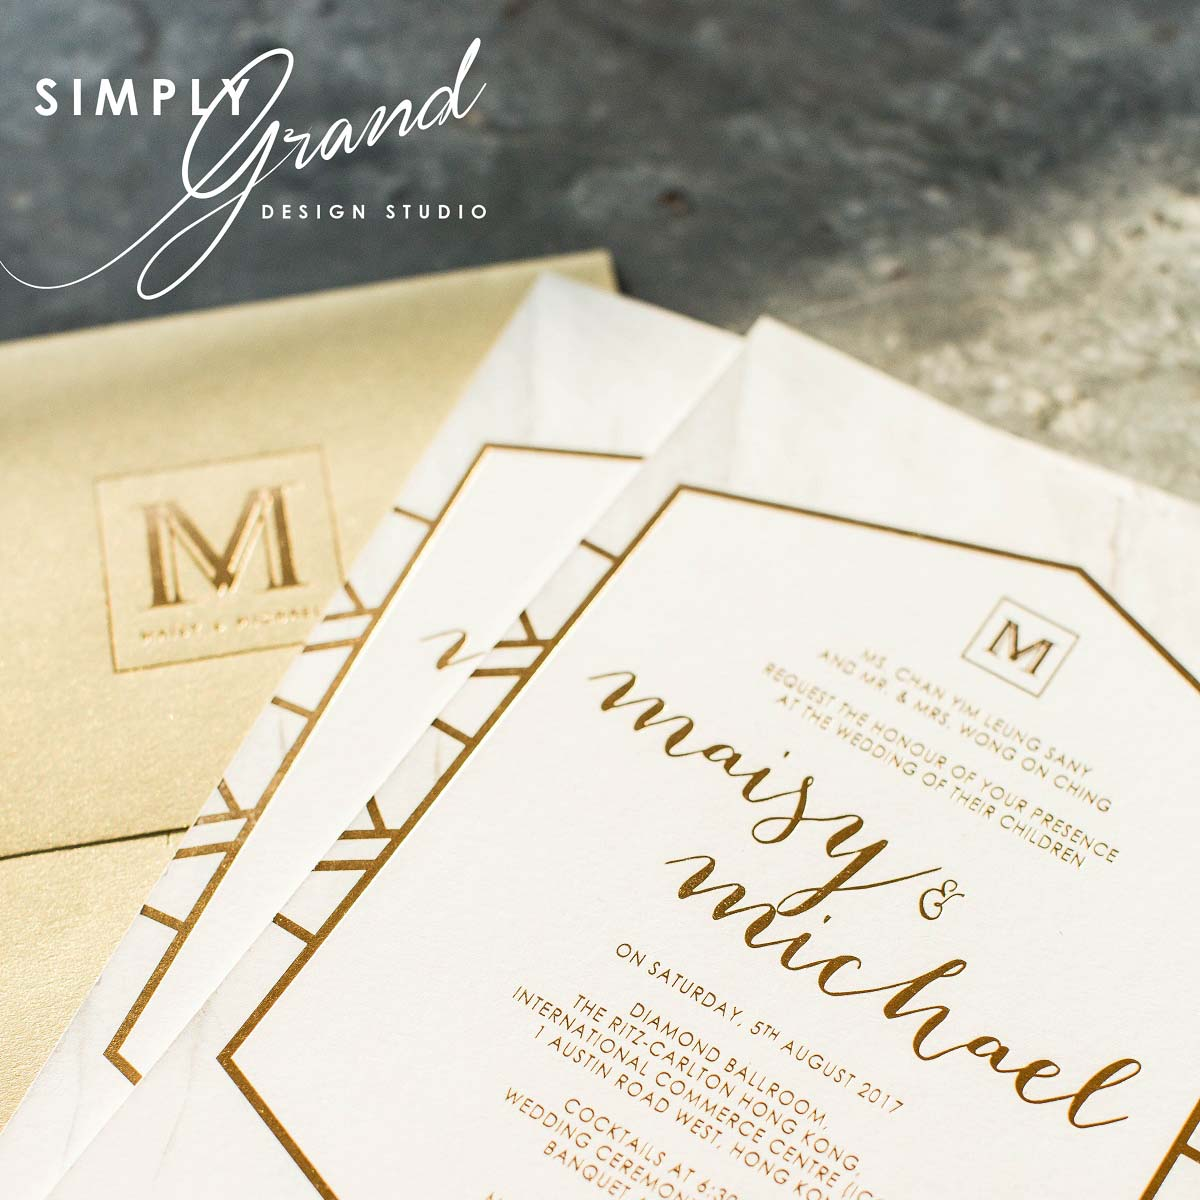 Simply_Grand_Production_Stationery_Invitation_Card_8_1